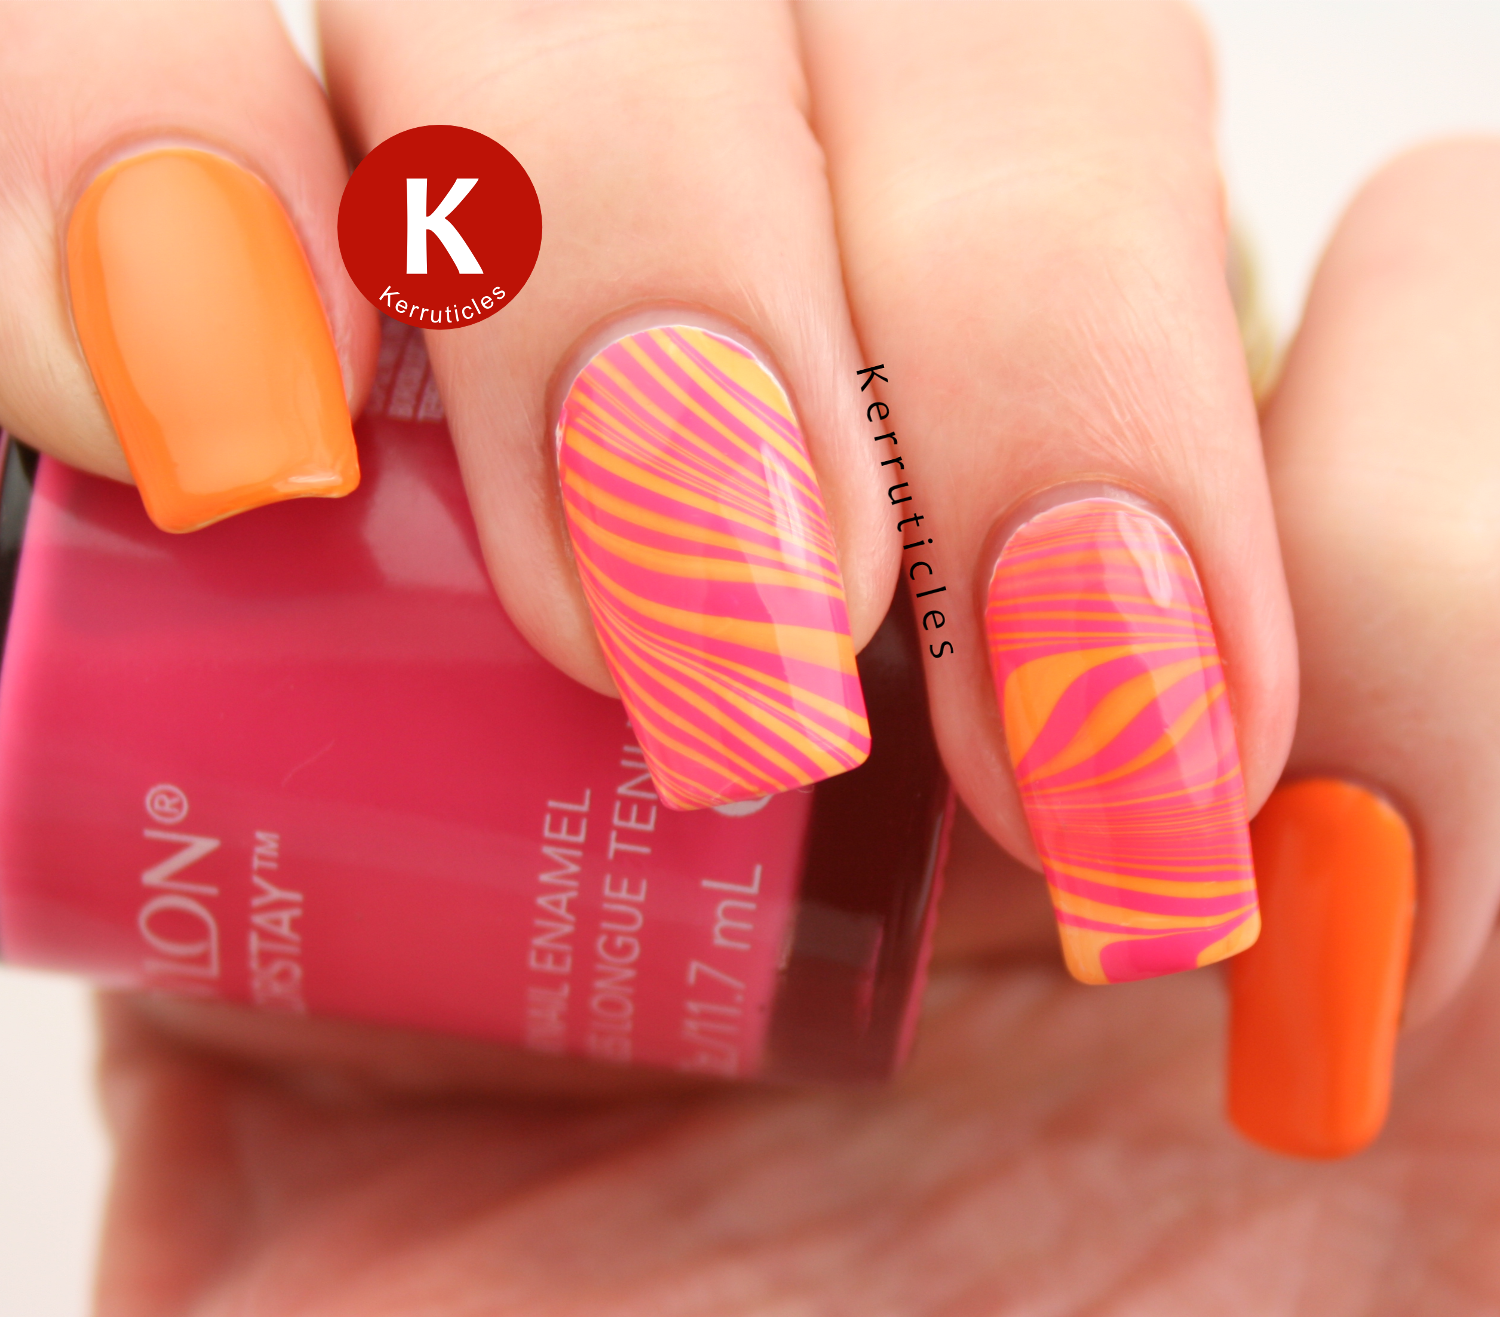 Pink and orange water marble using Revlon Colorstay polishes in Passionate Pink and Sorbet